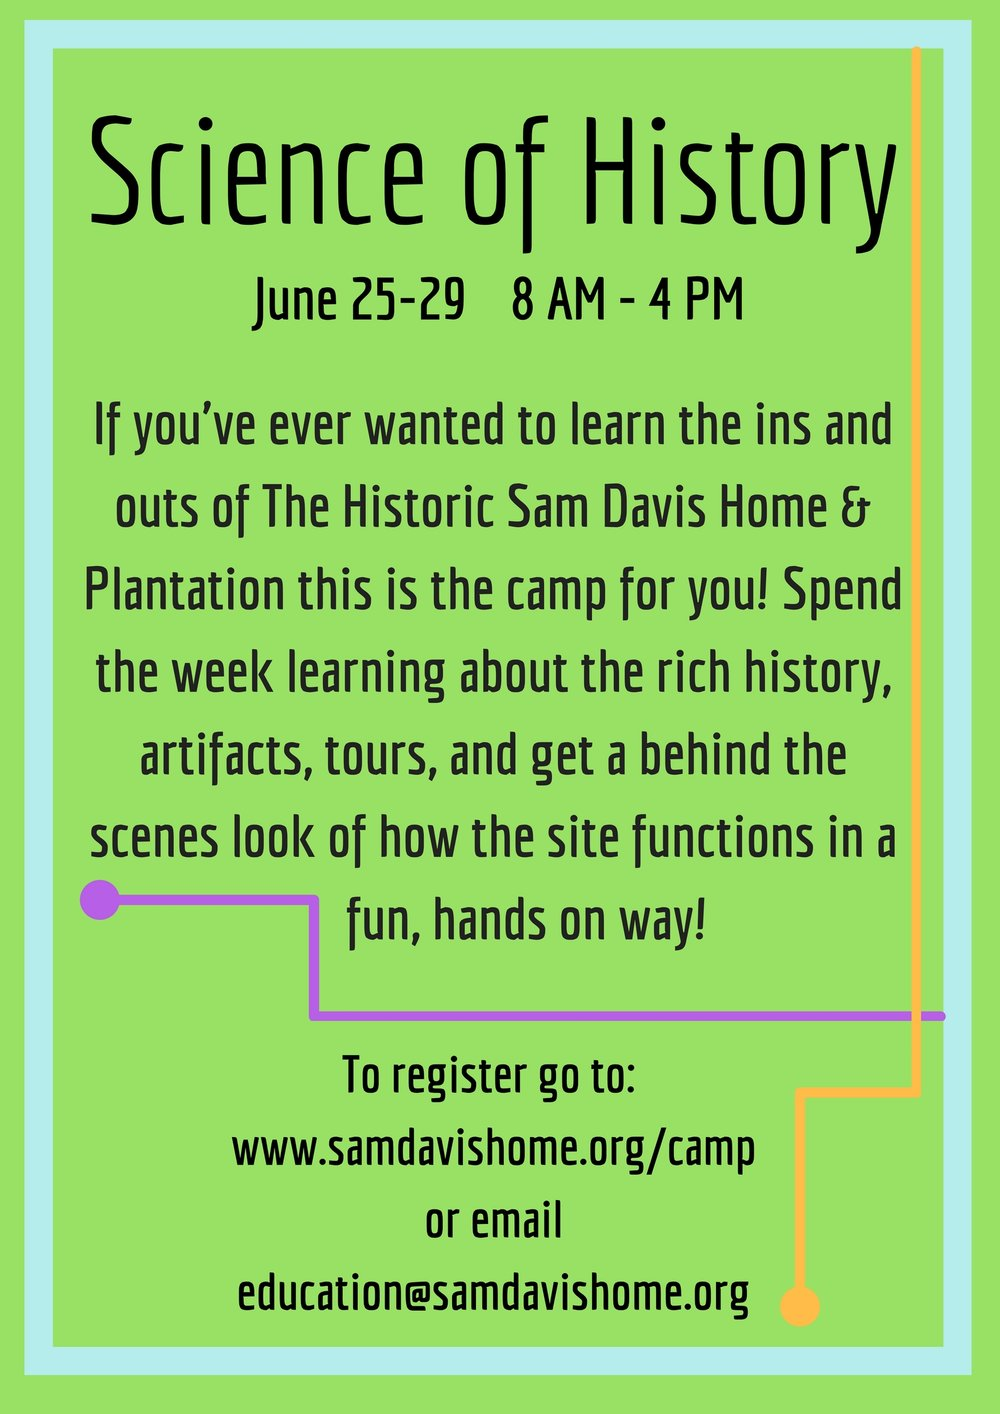 Science of History Camp Flyer.jpg